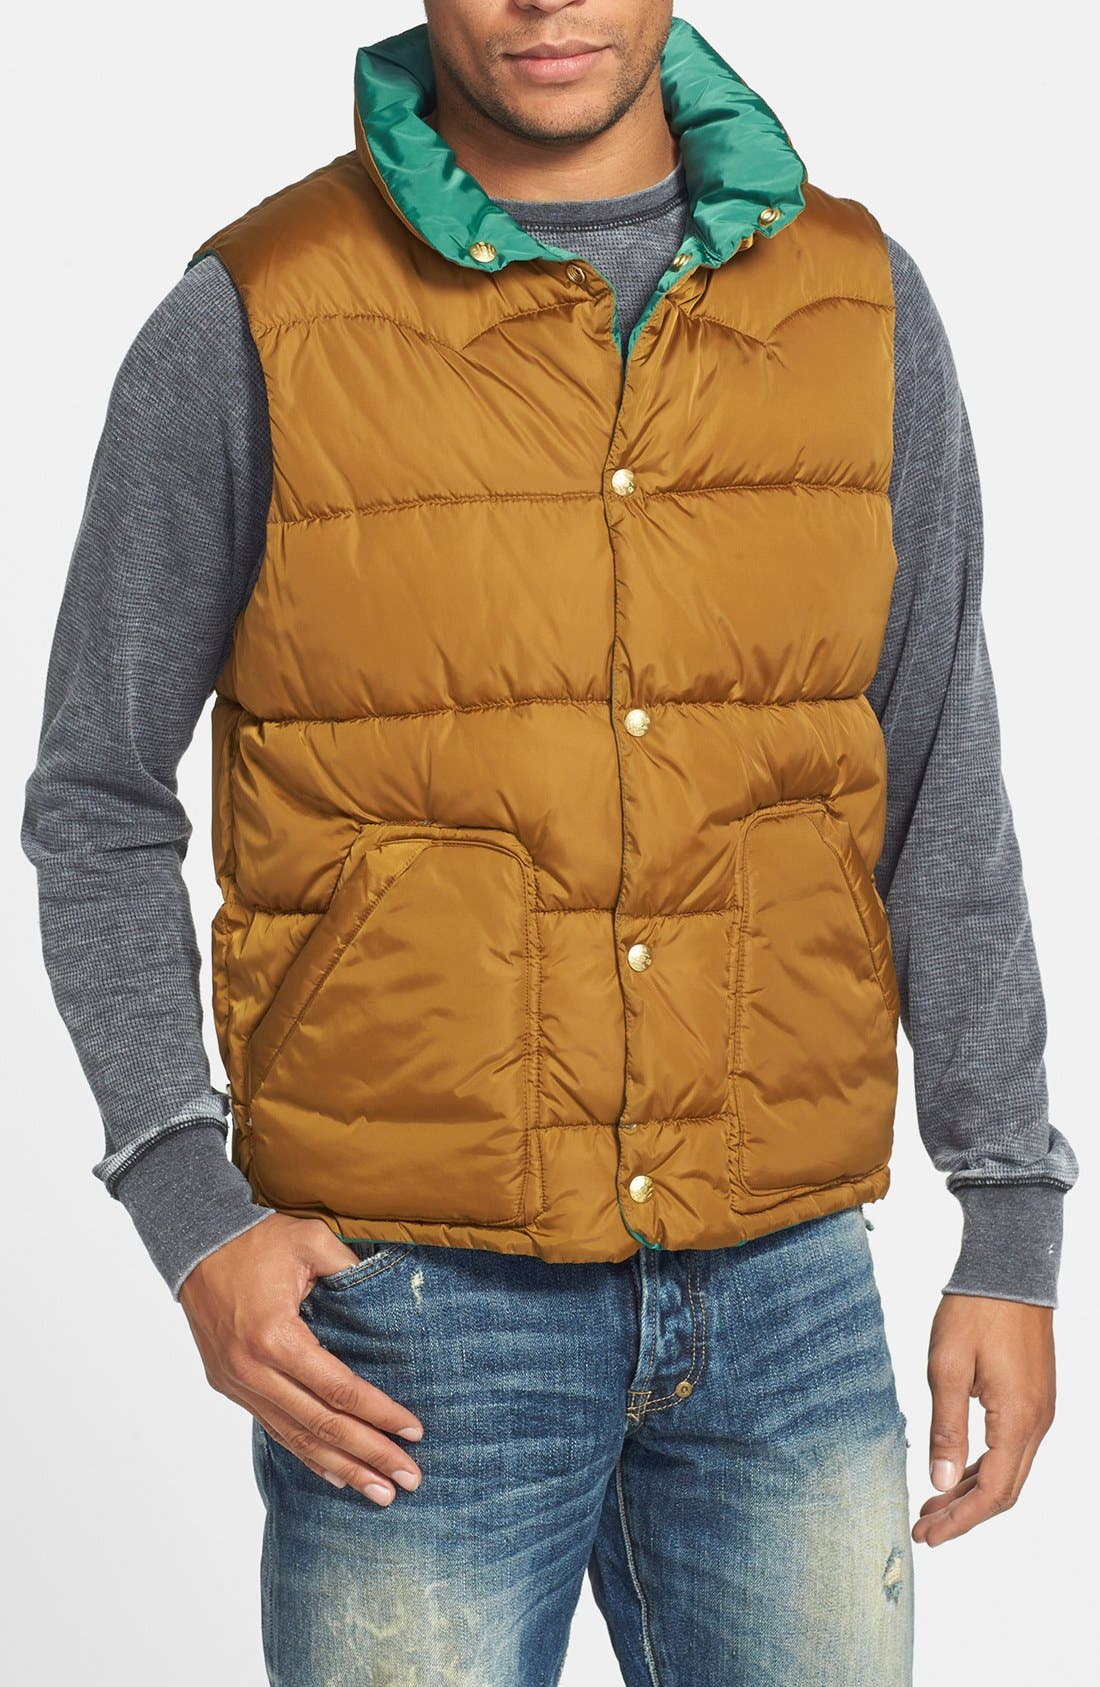 SCOTCH & SODA, Reversible Quilted Vest, Alternate thumbnail 5, color, 310